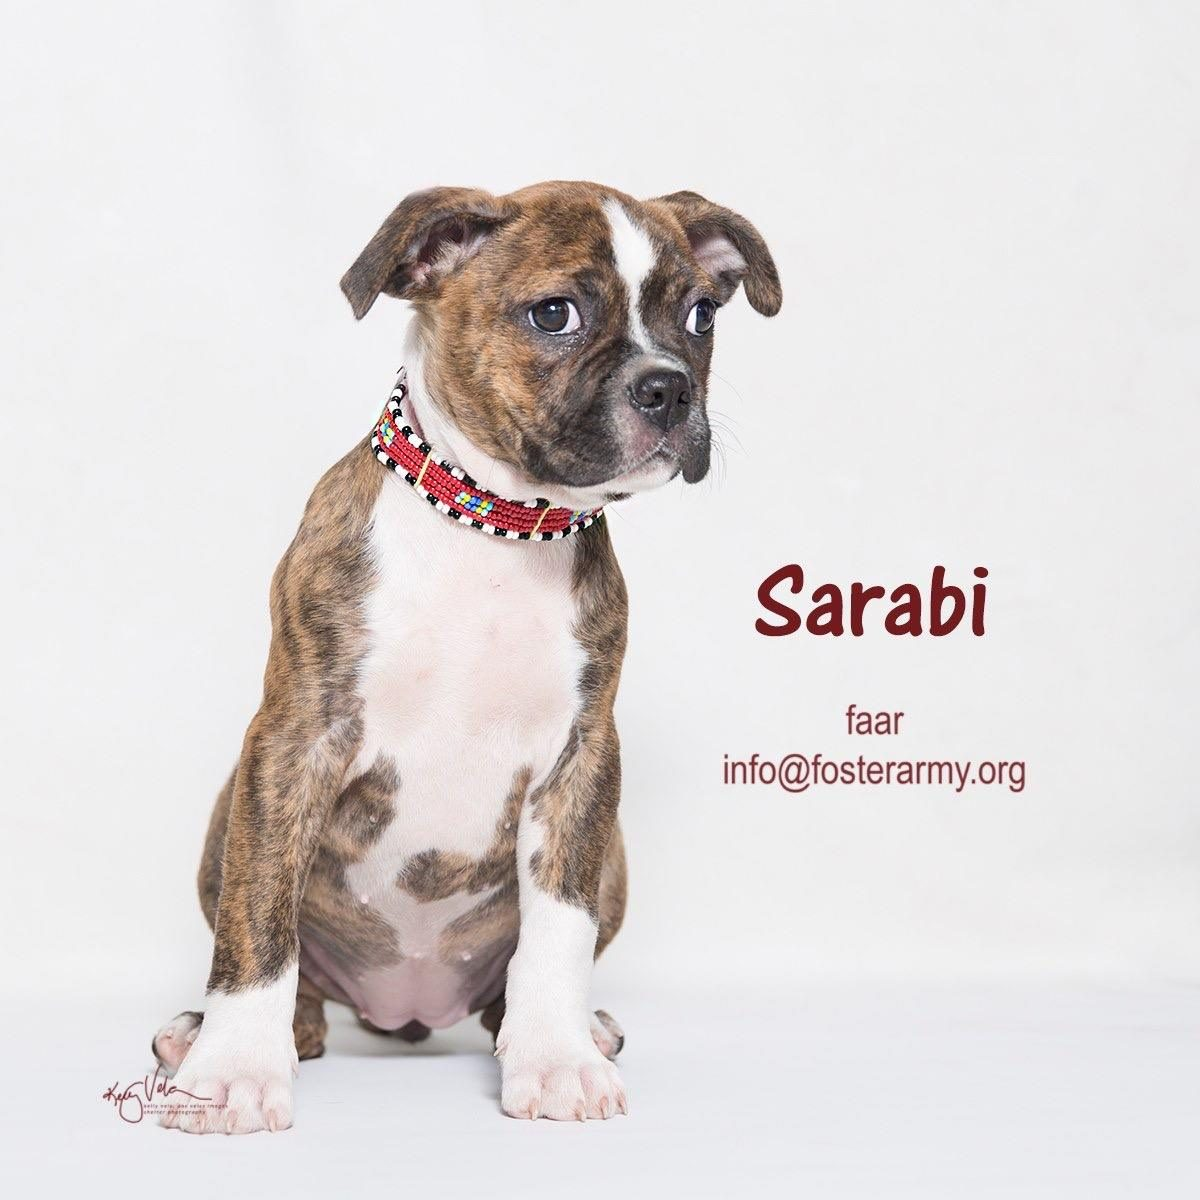 Adopt Sarabi the cutest puppy ever! Riverside, CA with Foster Army Animal Rescue